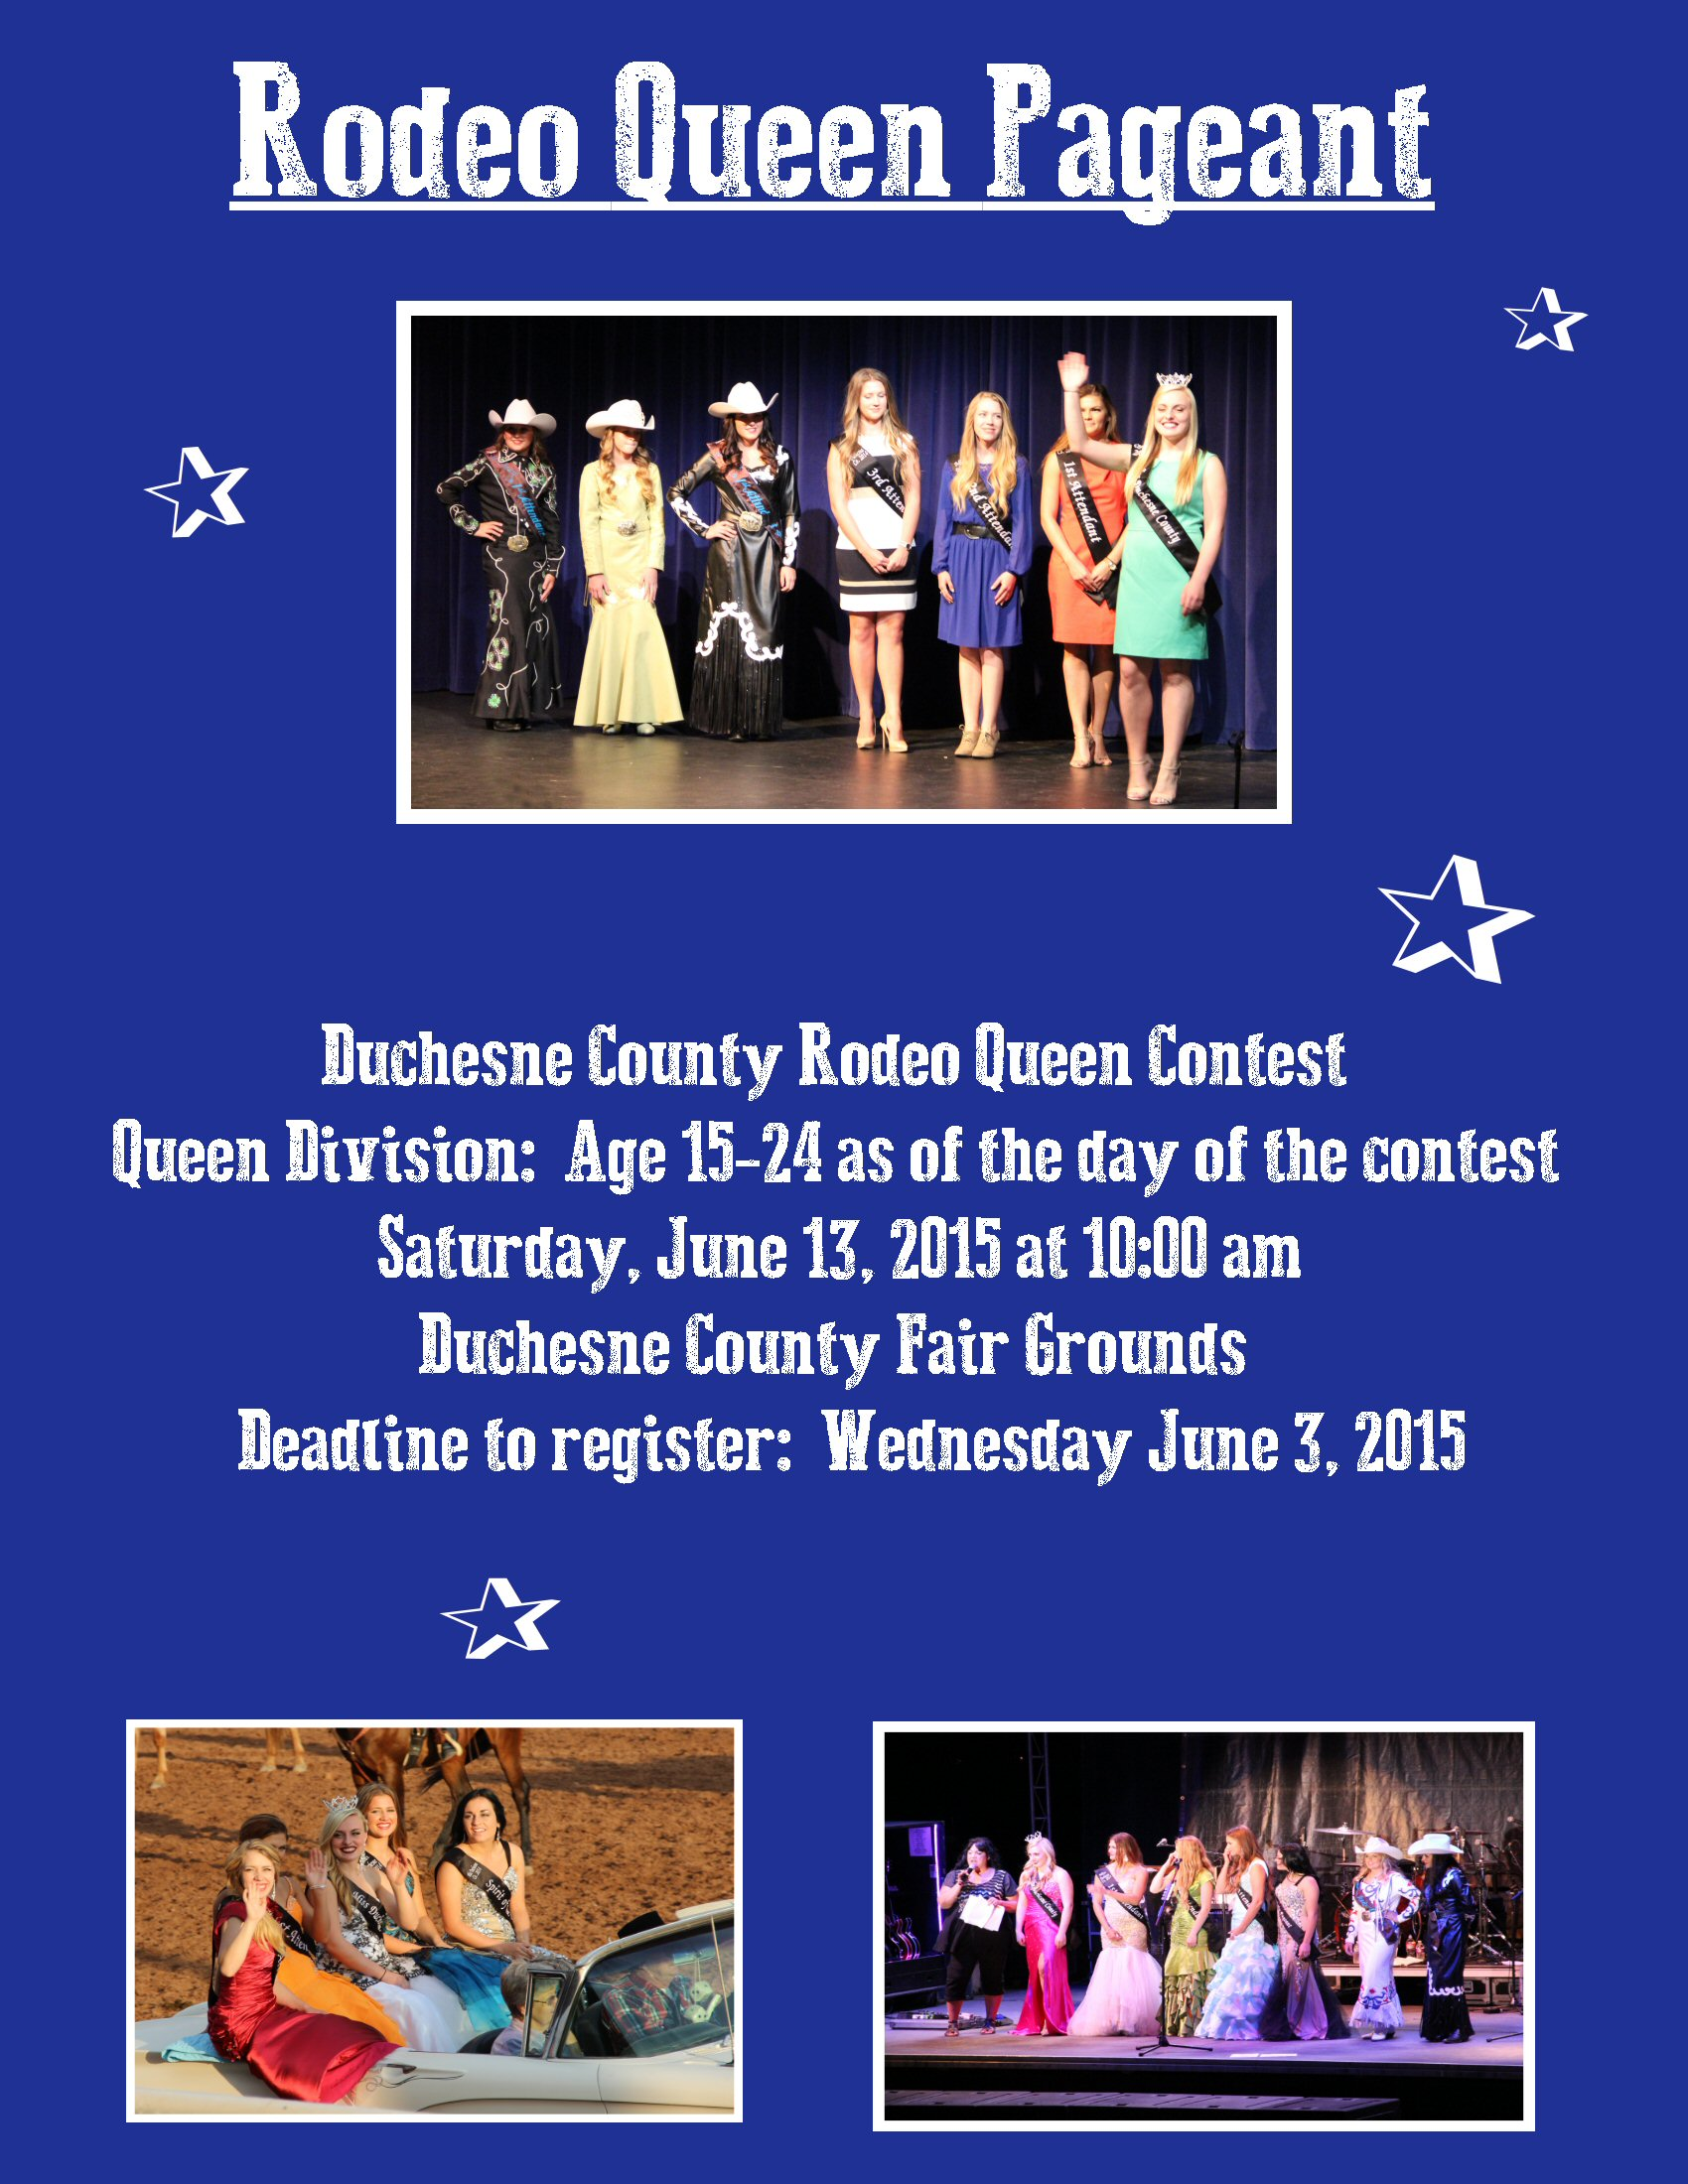 Rodeo Queen Pageant